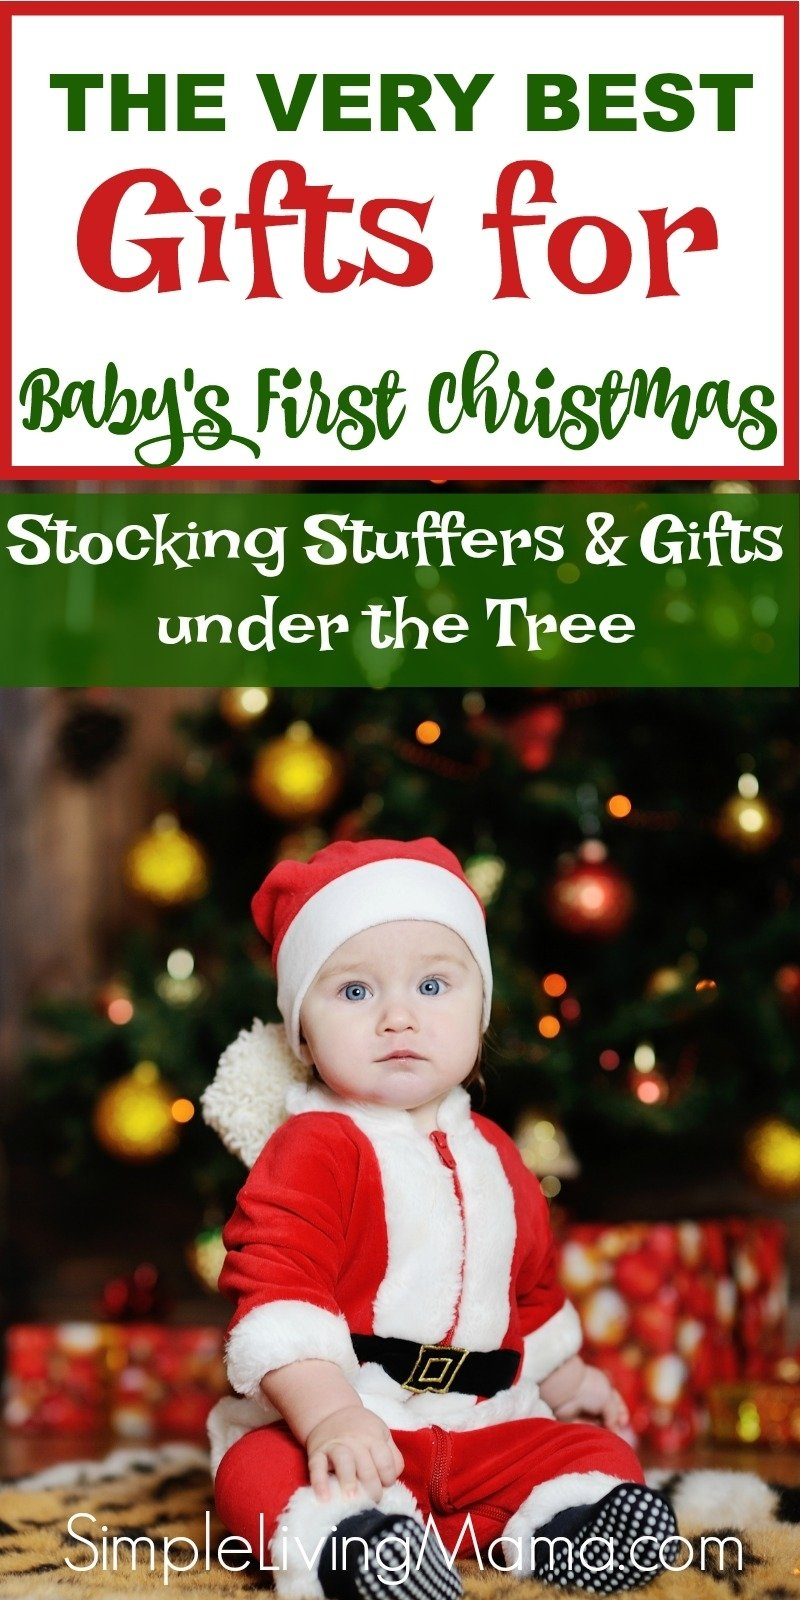 10 Ideal Baby First Christmas Gift Ideas gift ideas for babys first christmas simple living mama 2020